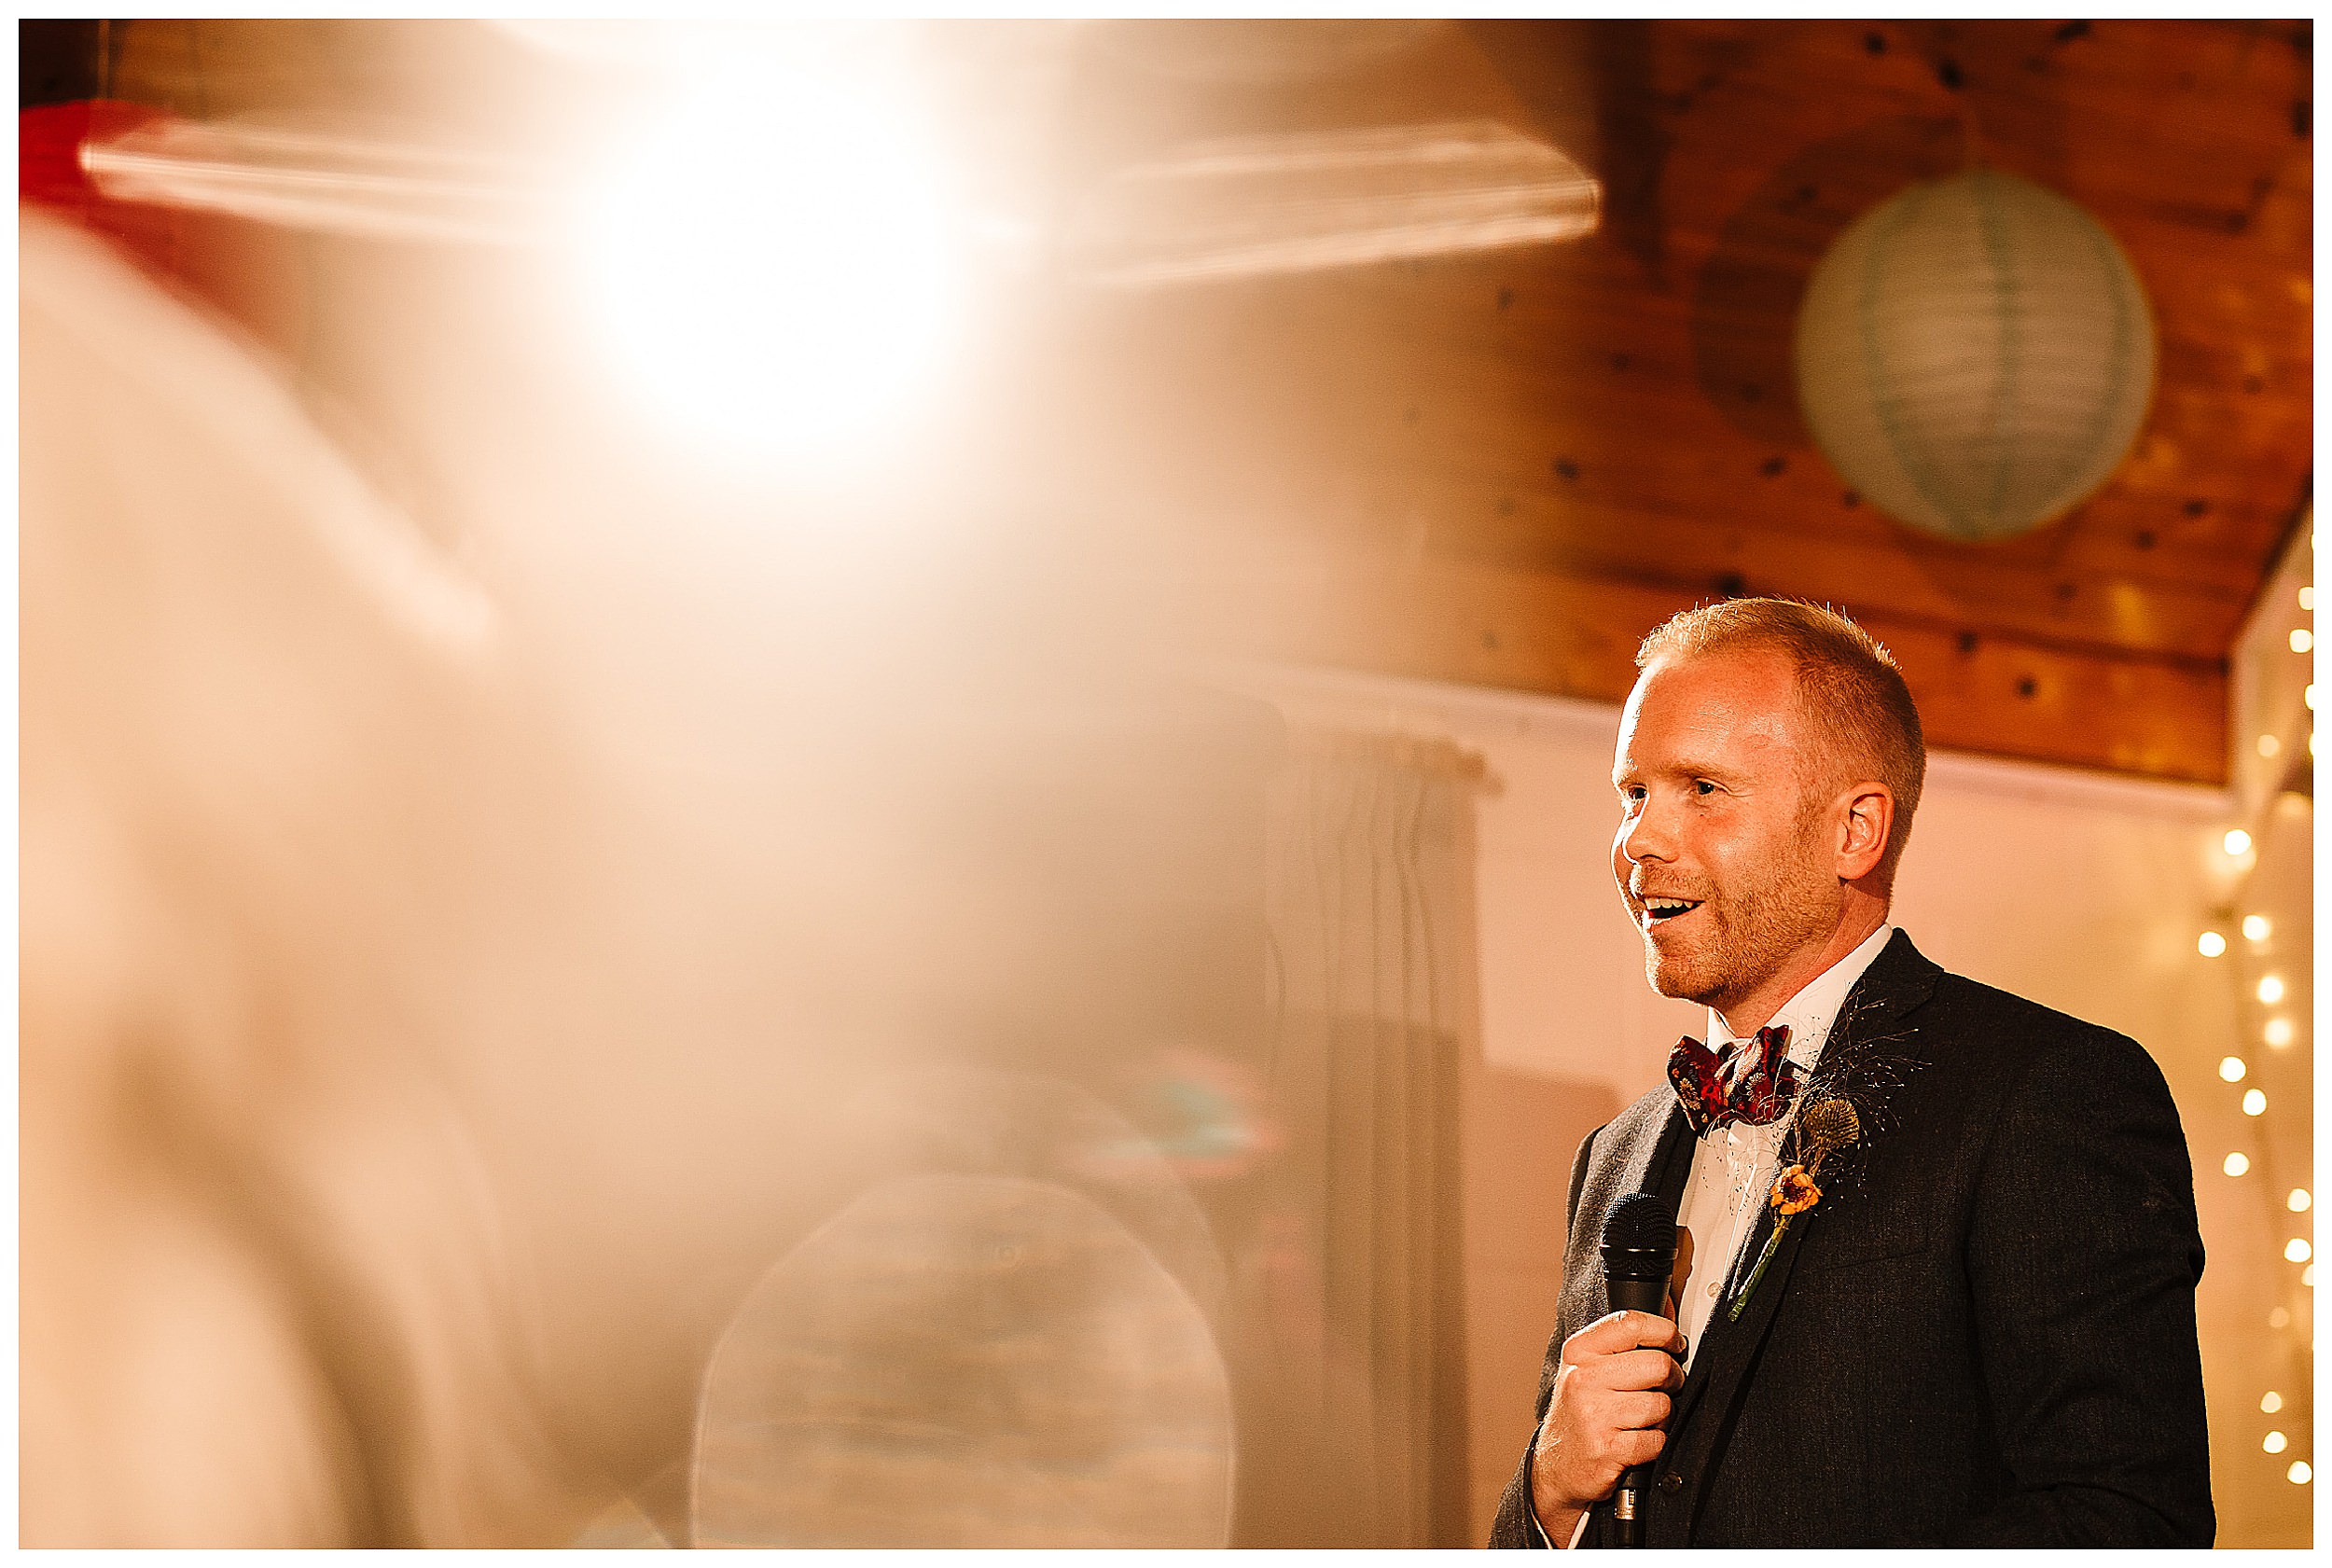 A groom doing his speech into a microphone